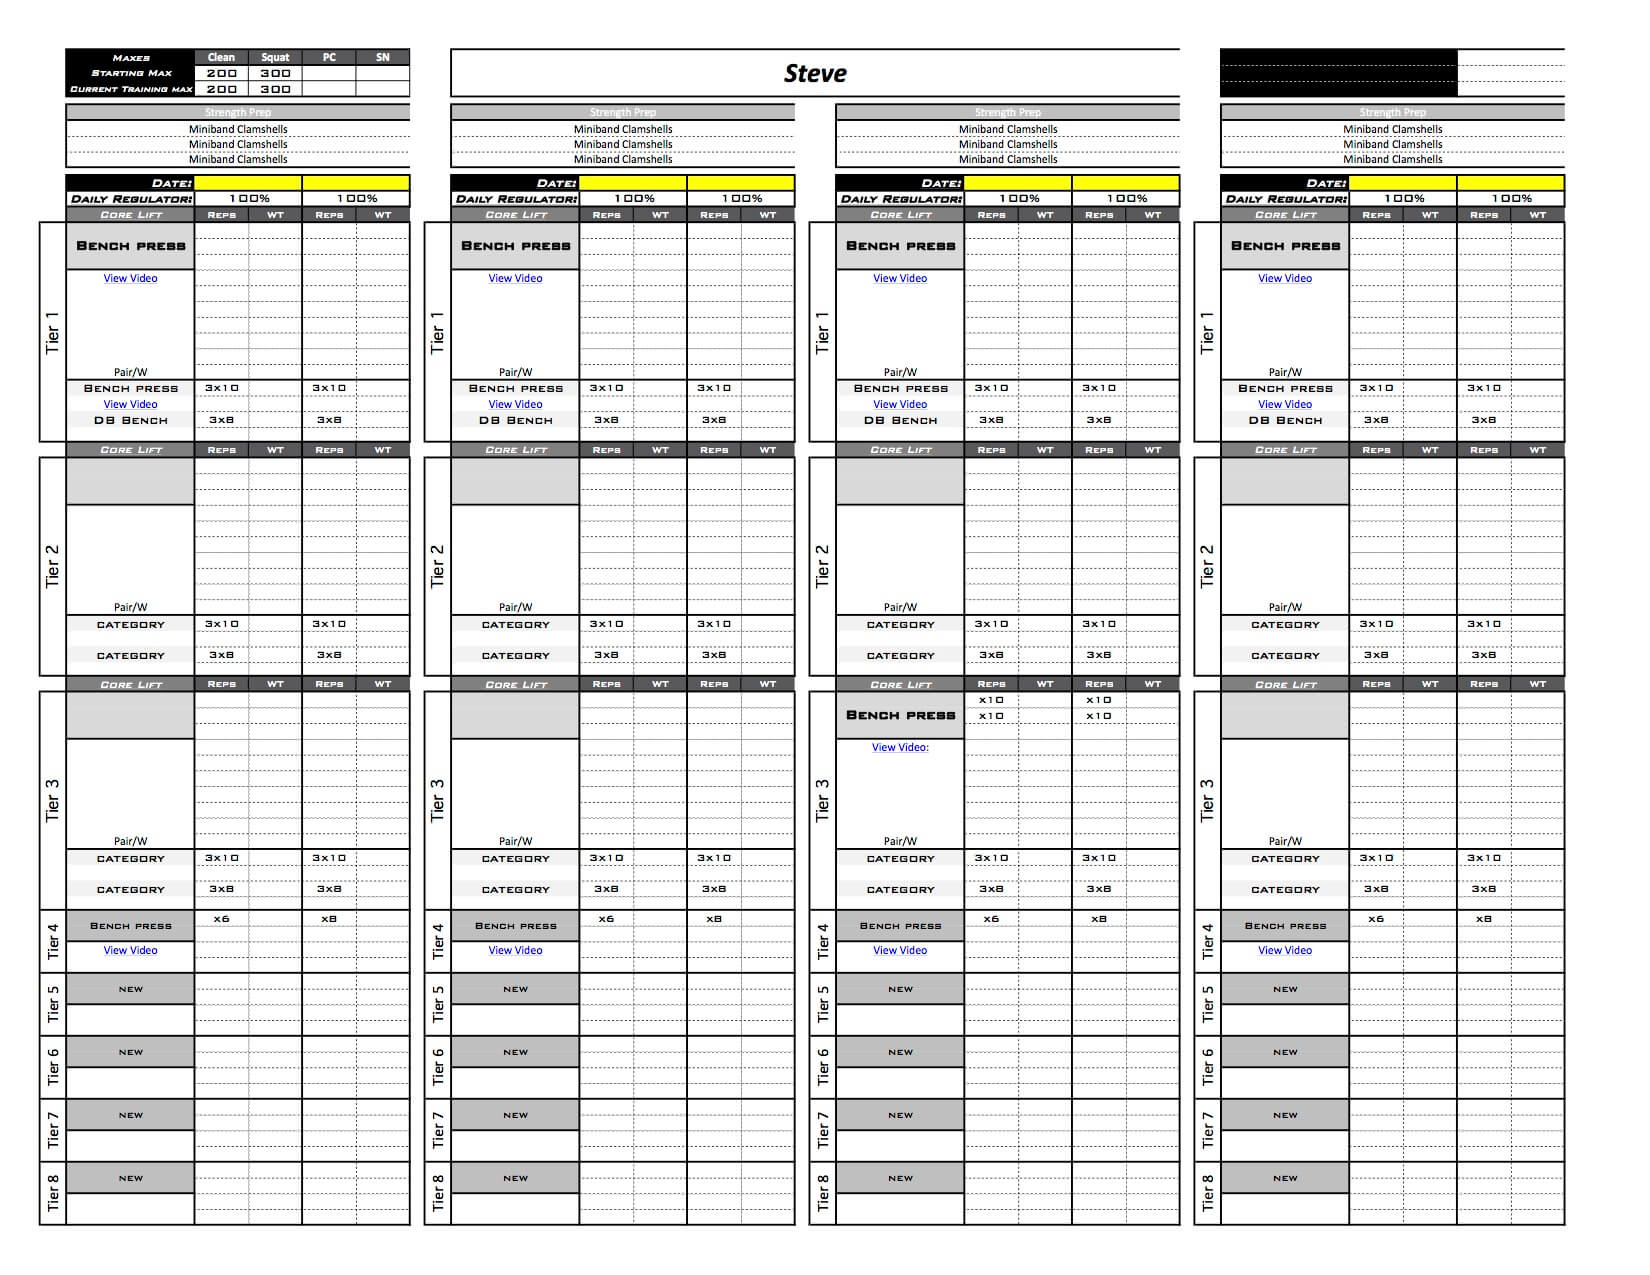 Online training template excel training designs 4 day template with the 2 week option selected alramifo Image collections